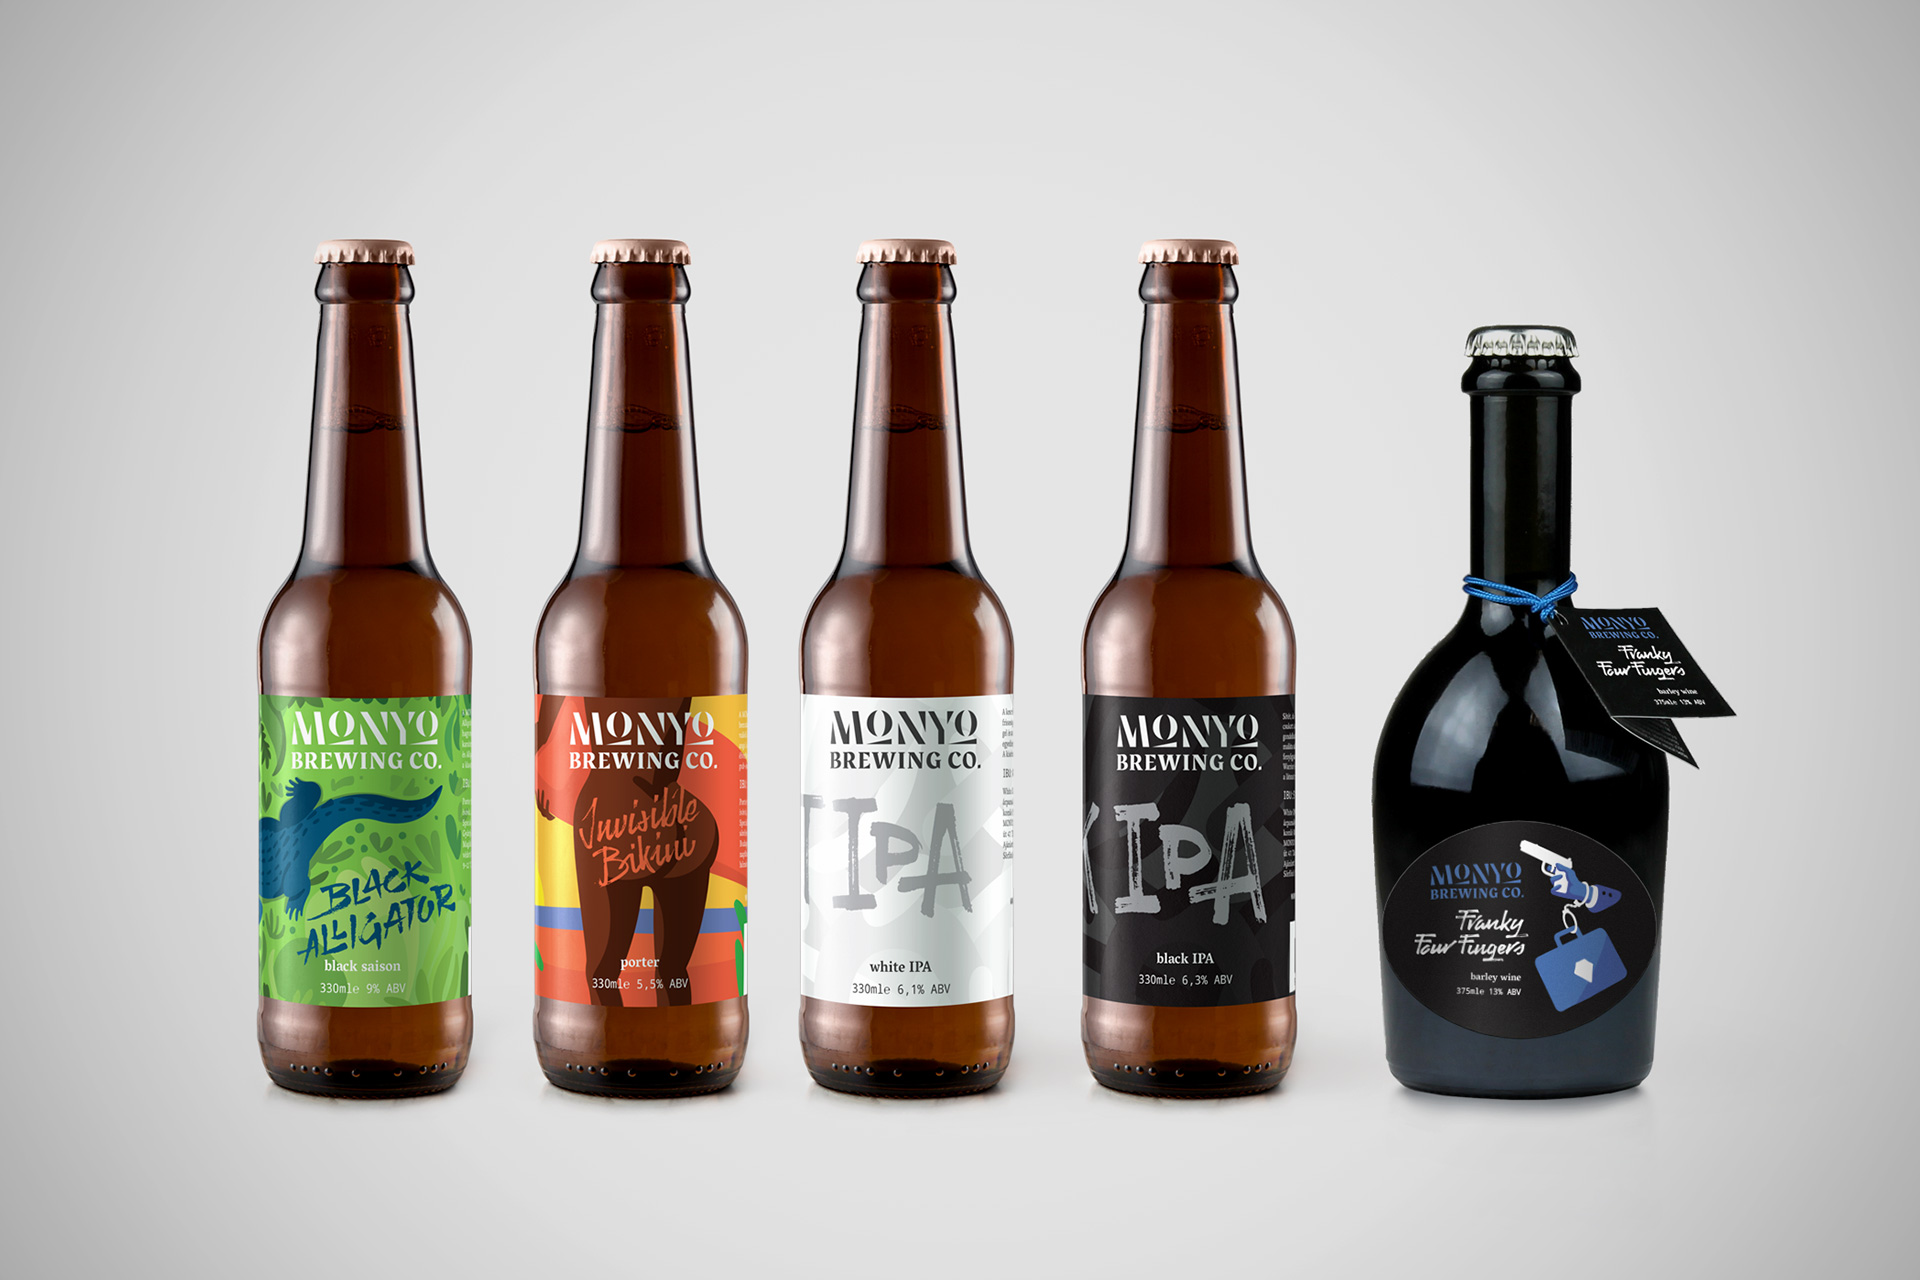 MONYO craft beer packaging \ Family portrait